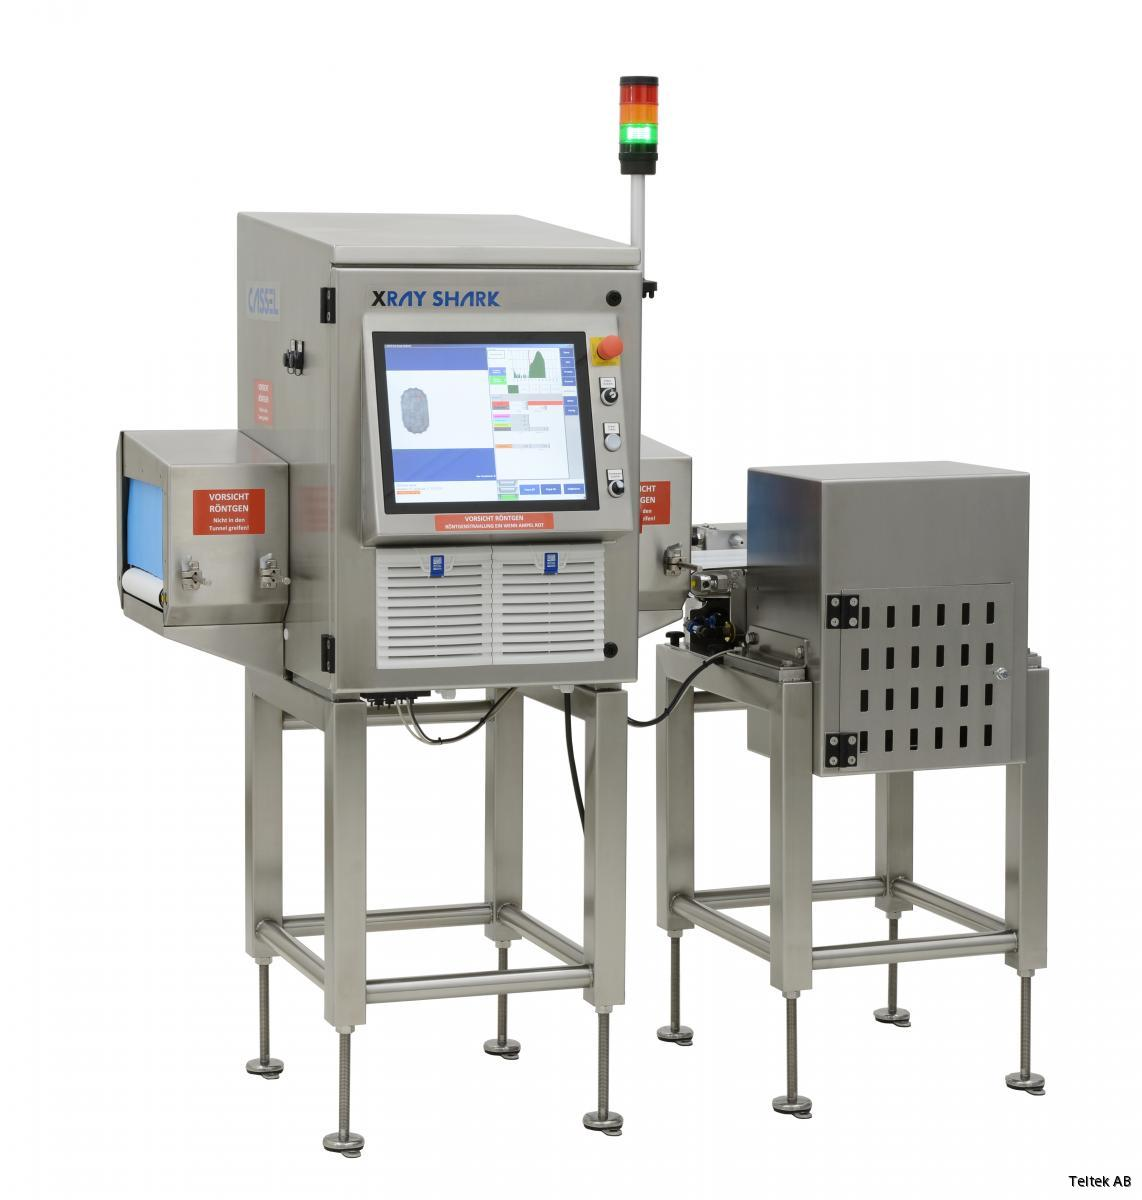 X-ray detection equipment that detect contaminants in your products